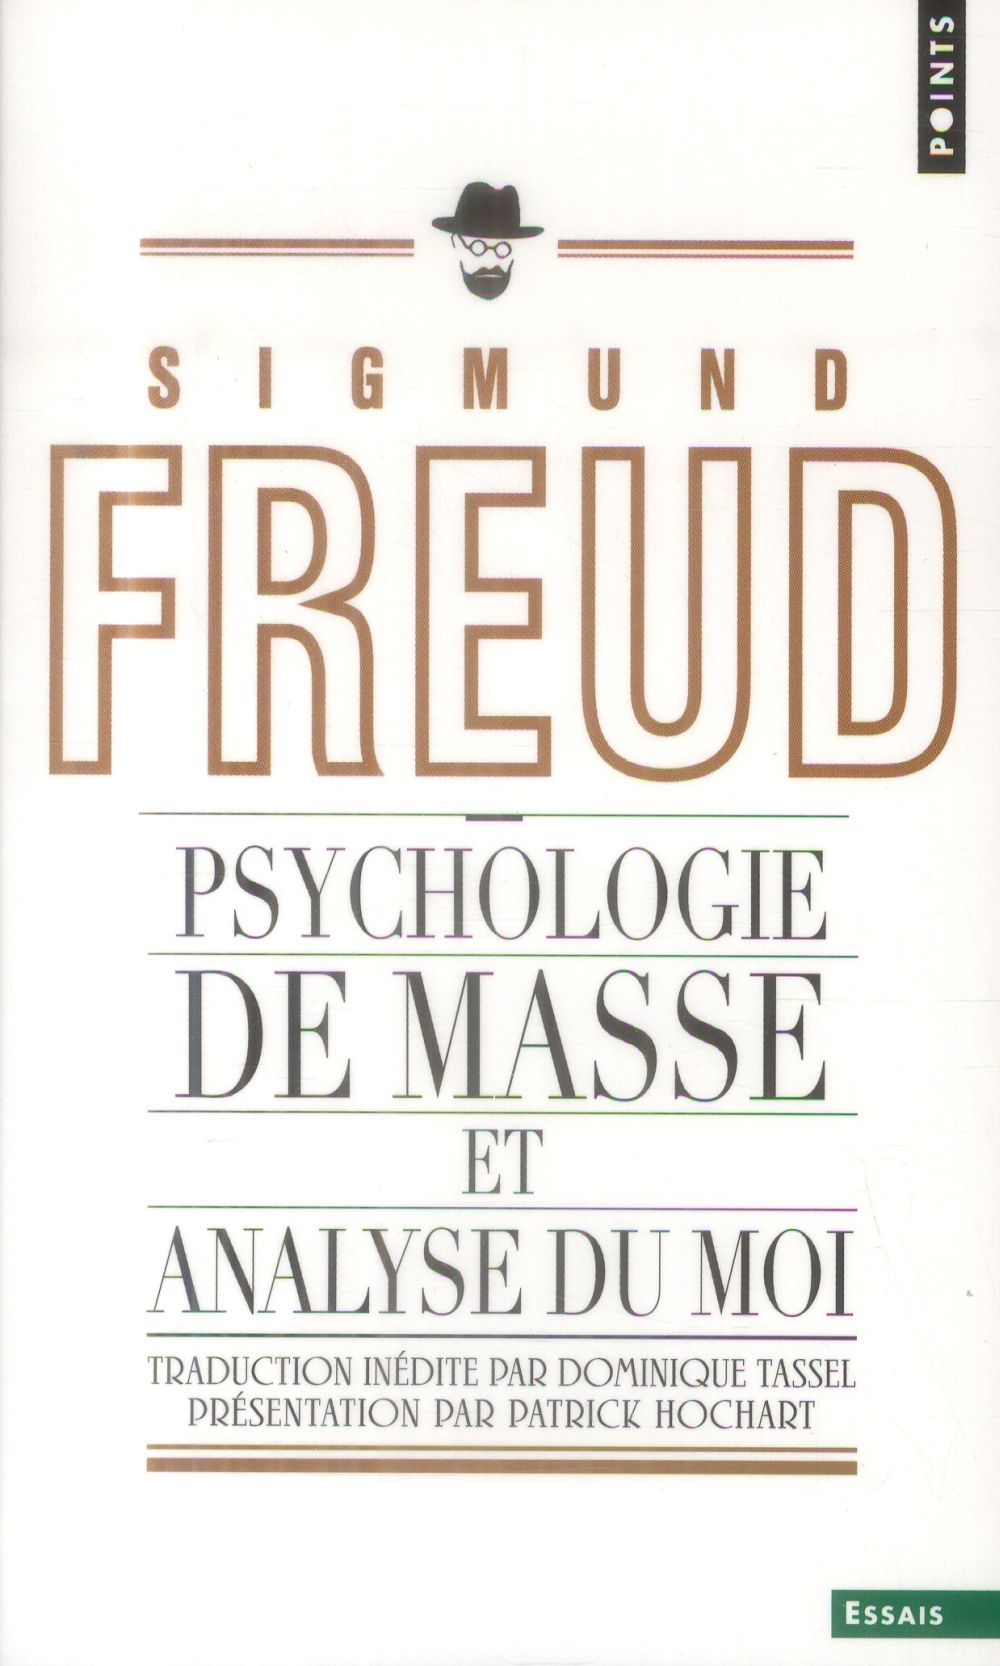 Psychologie de masse et analyse du moi